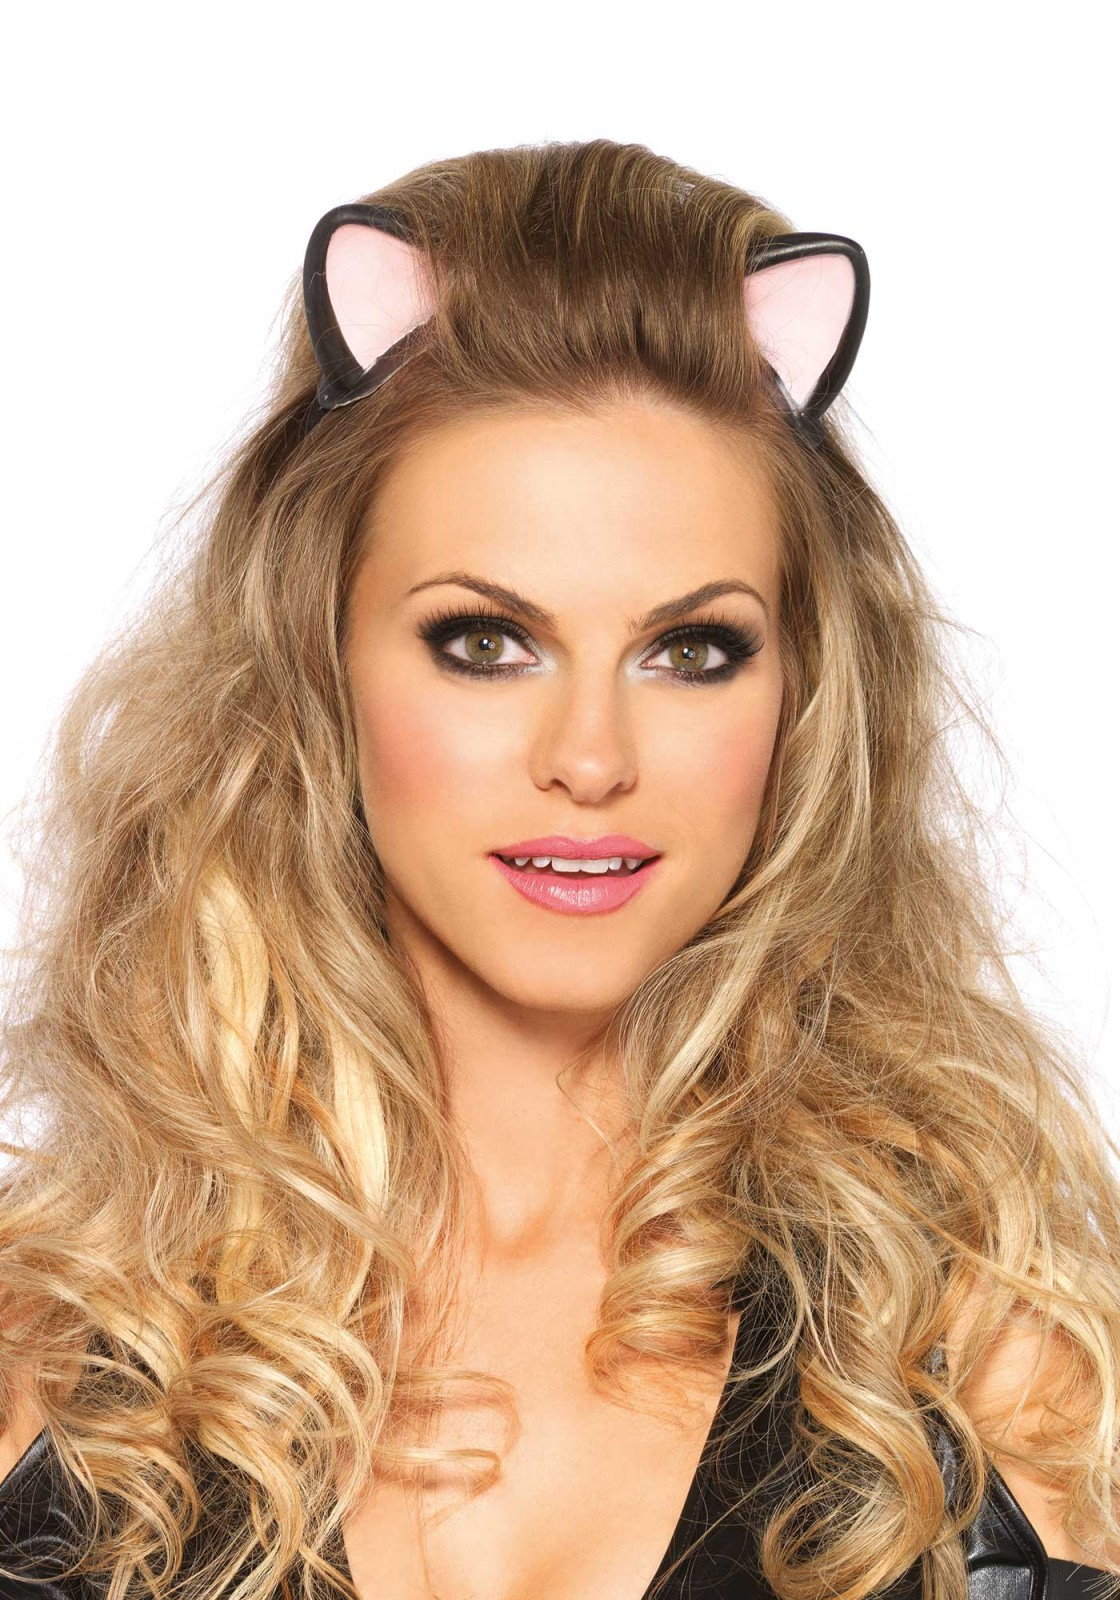 Create a purrrfect party look with these latex cat ears. The ears are attached on a headband.